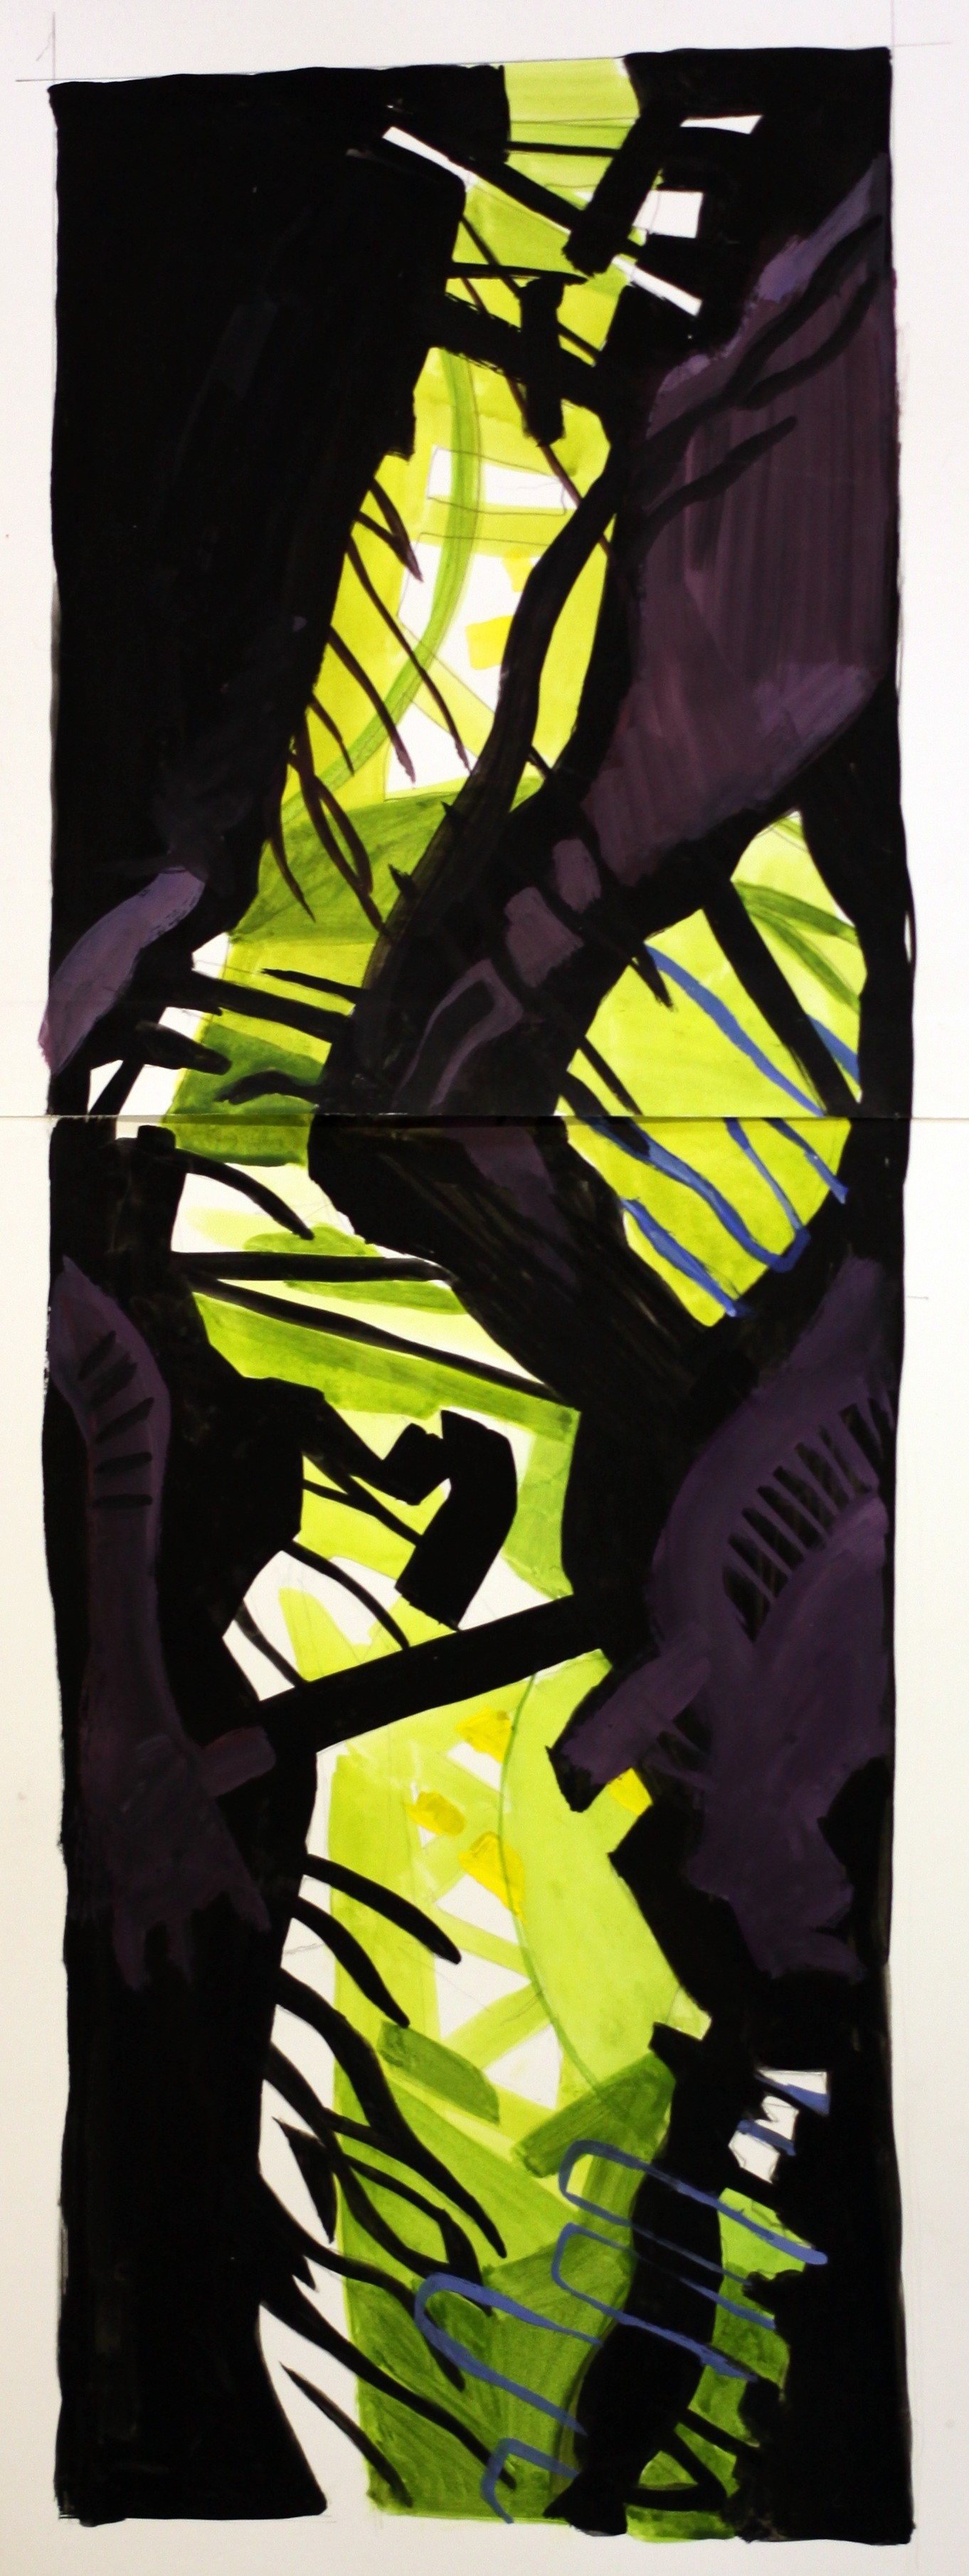 Sam Scorer Phill Bowman 043 - Meander (Green), 2014